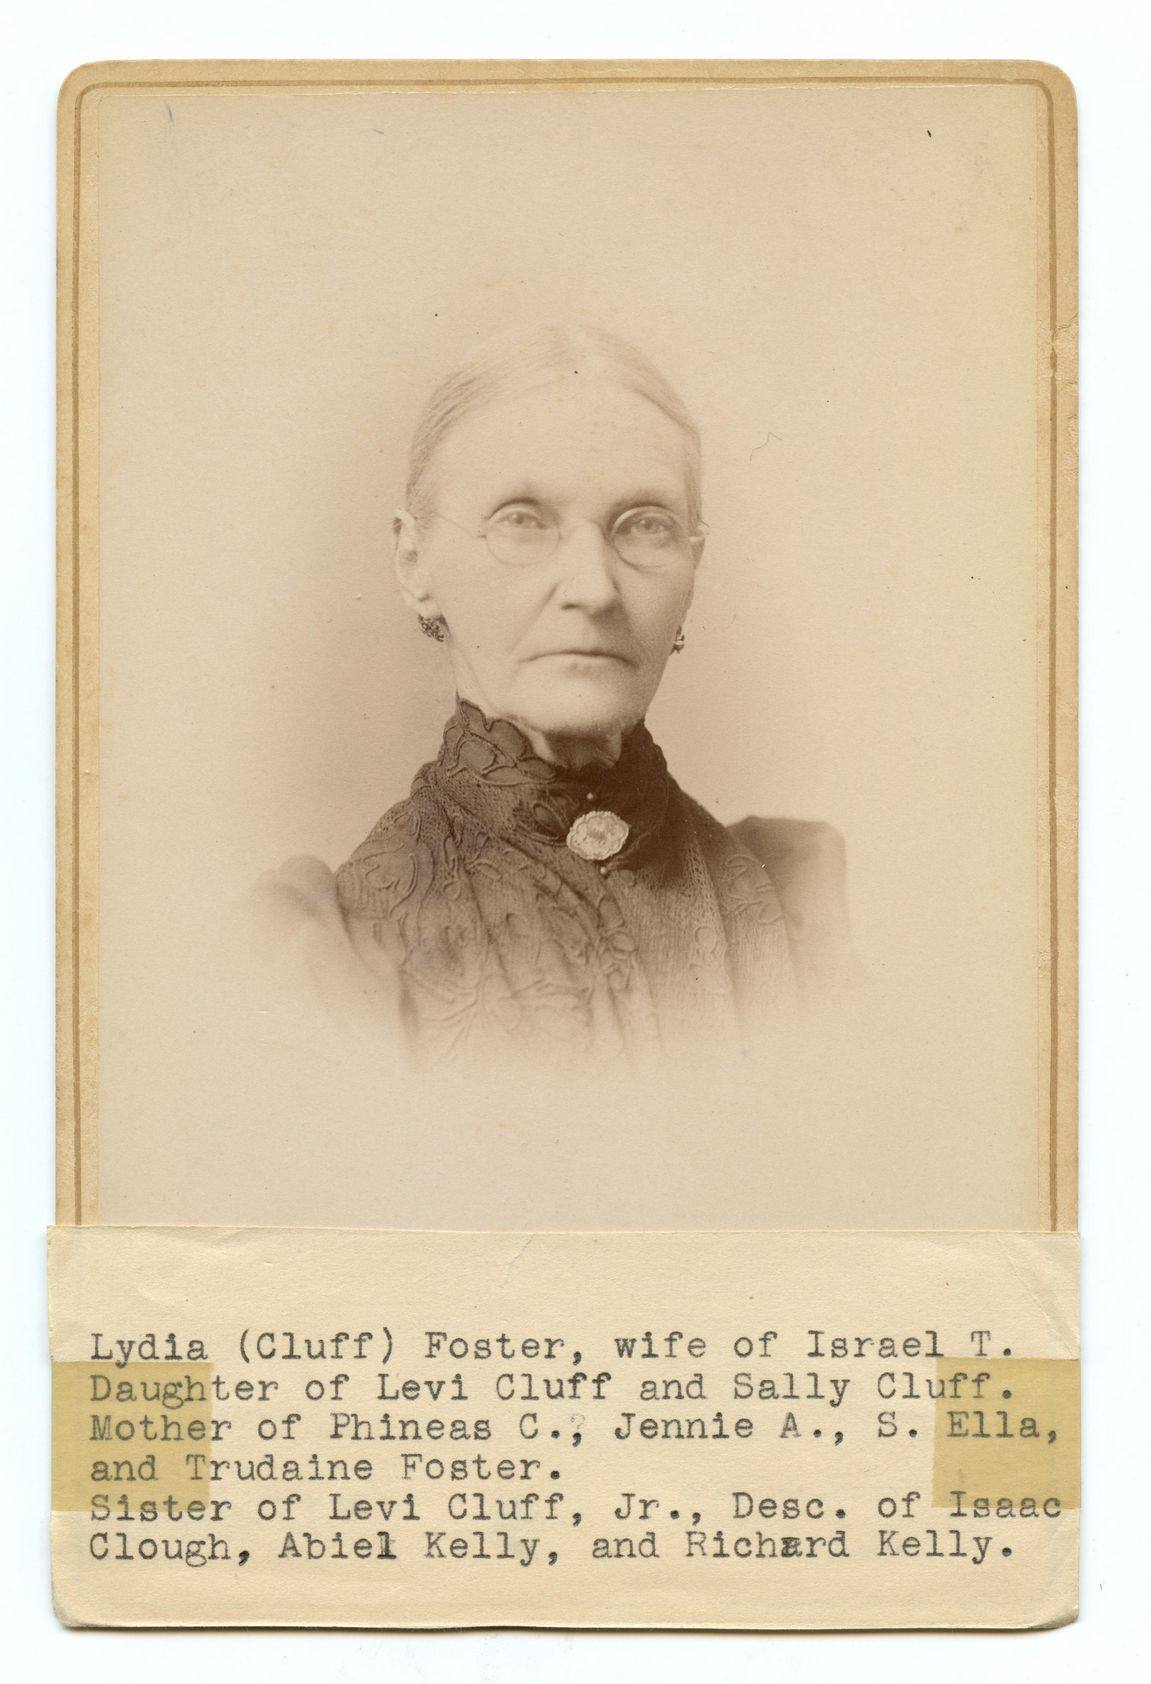 Lydia Cluff Foster